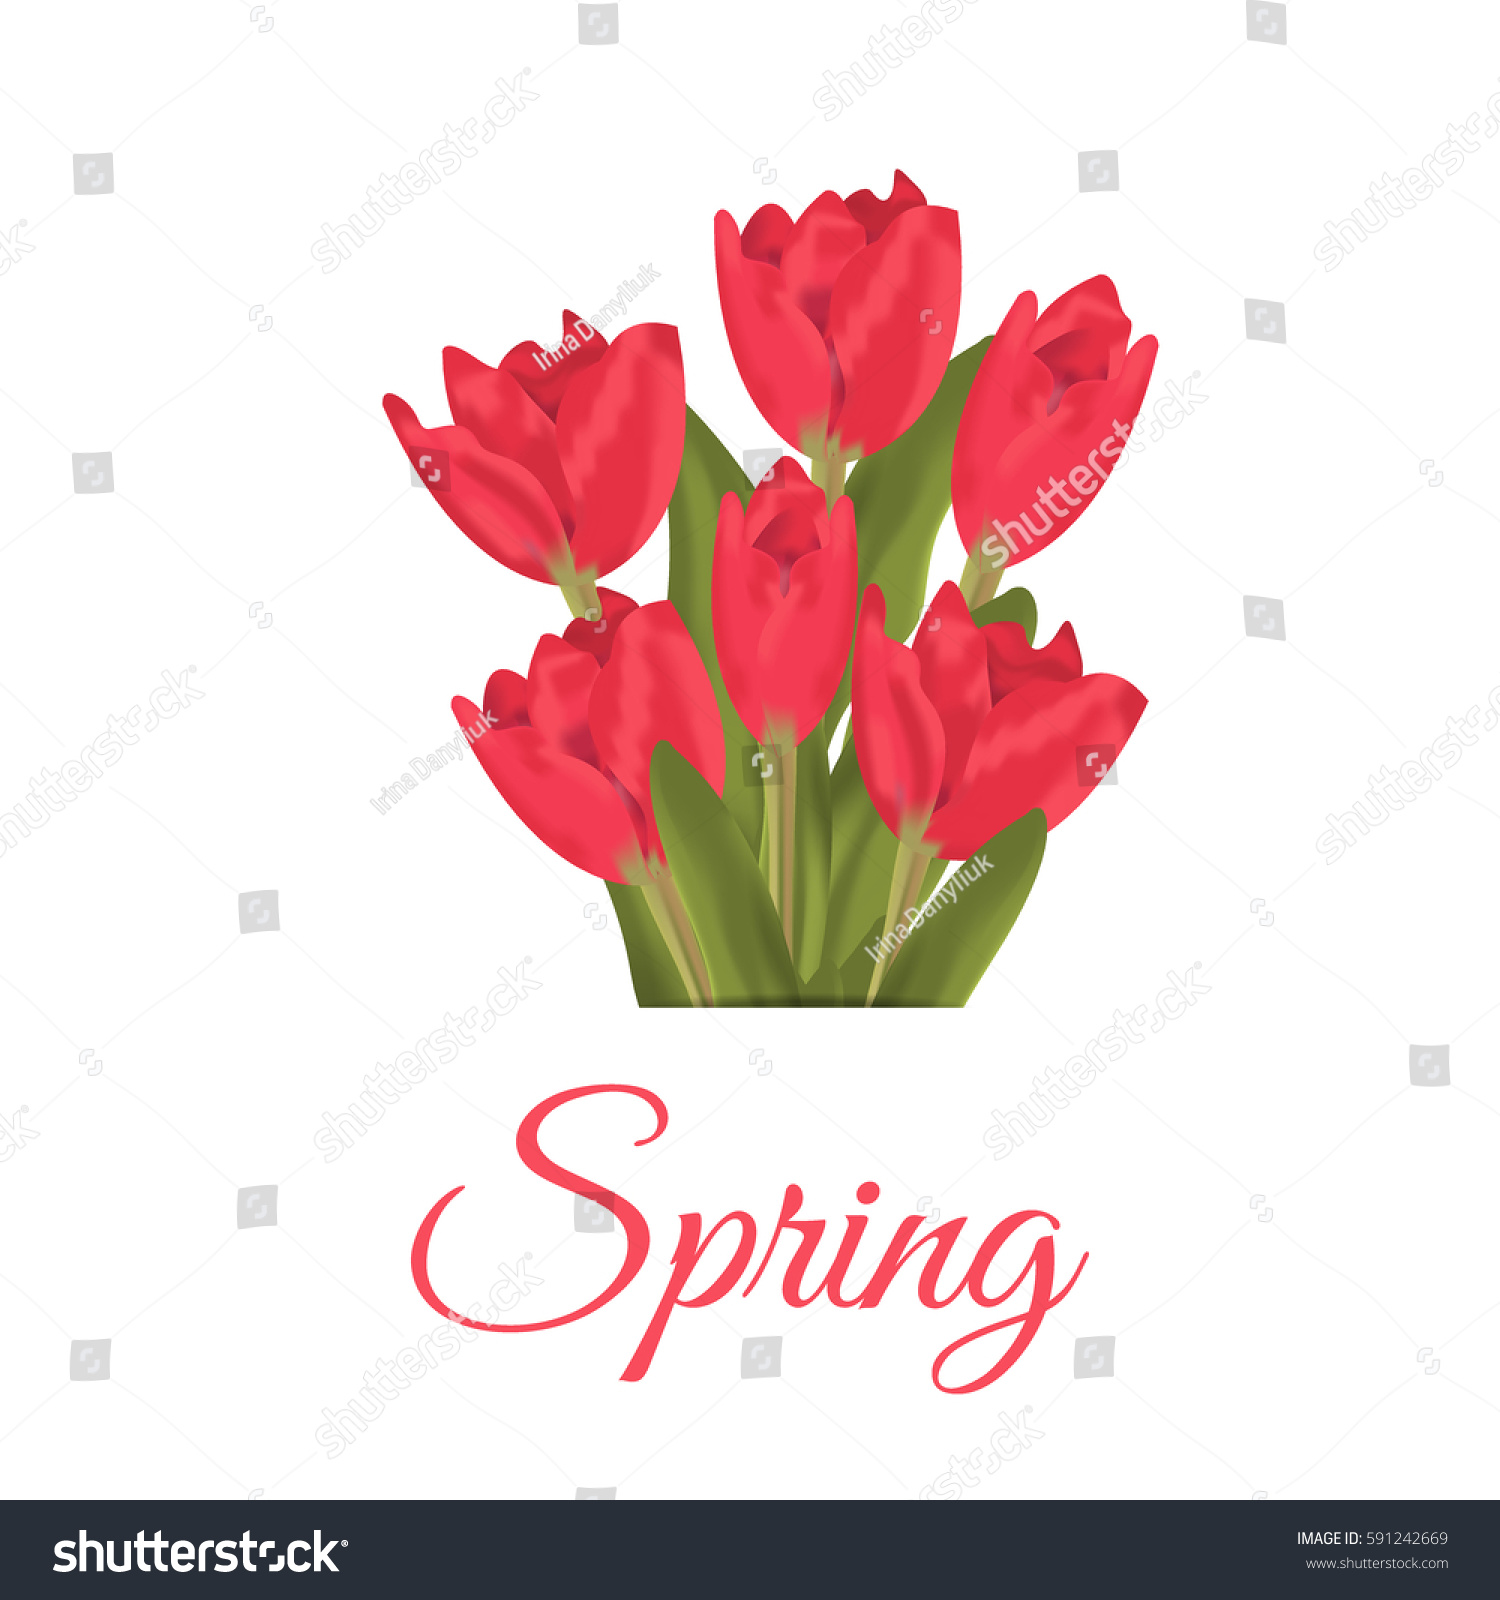 Spring text red tulips flower bouquet stock vector royalty free spring text with red tulips flower bouquet vector illustration tulips beauty spring pink blossom izmirmasajfo